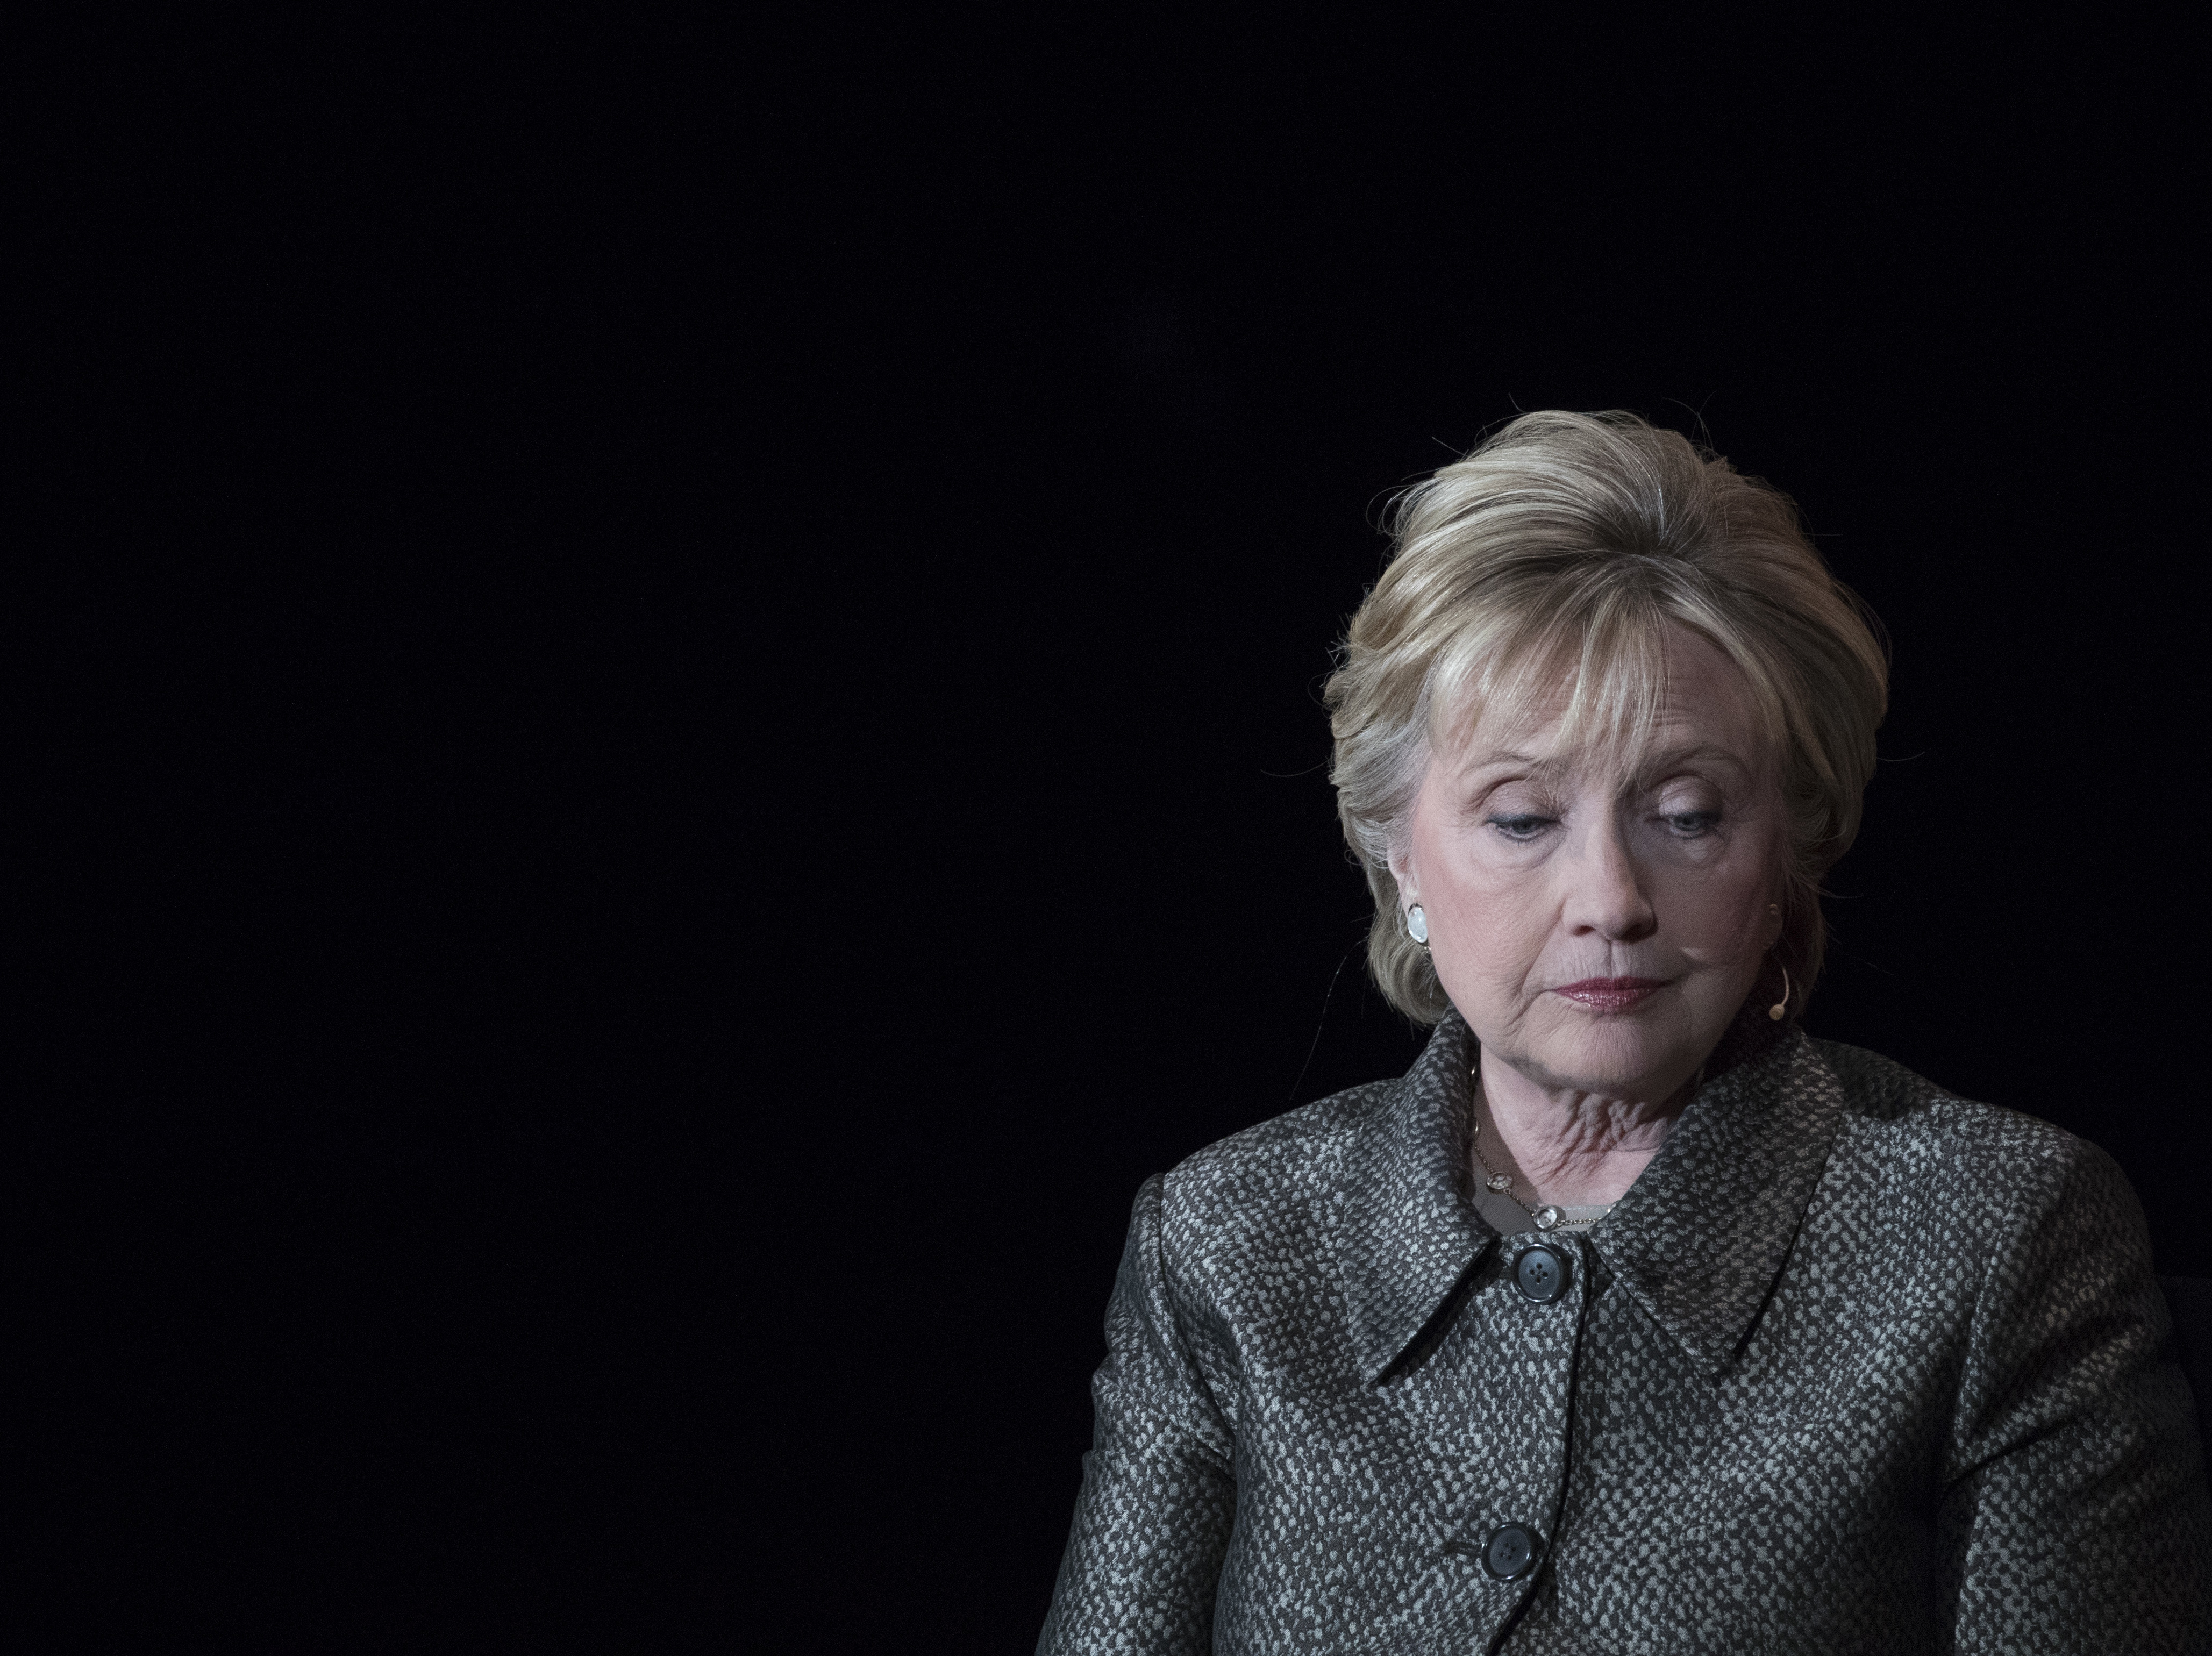 Hillary Clinton Believes Misogyny Cost Her The Election